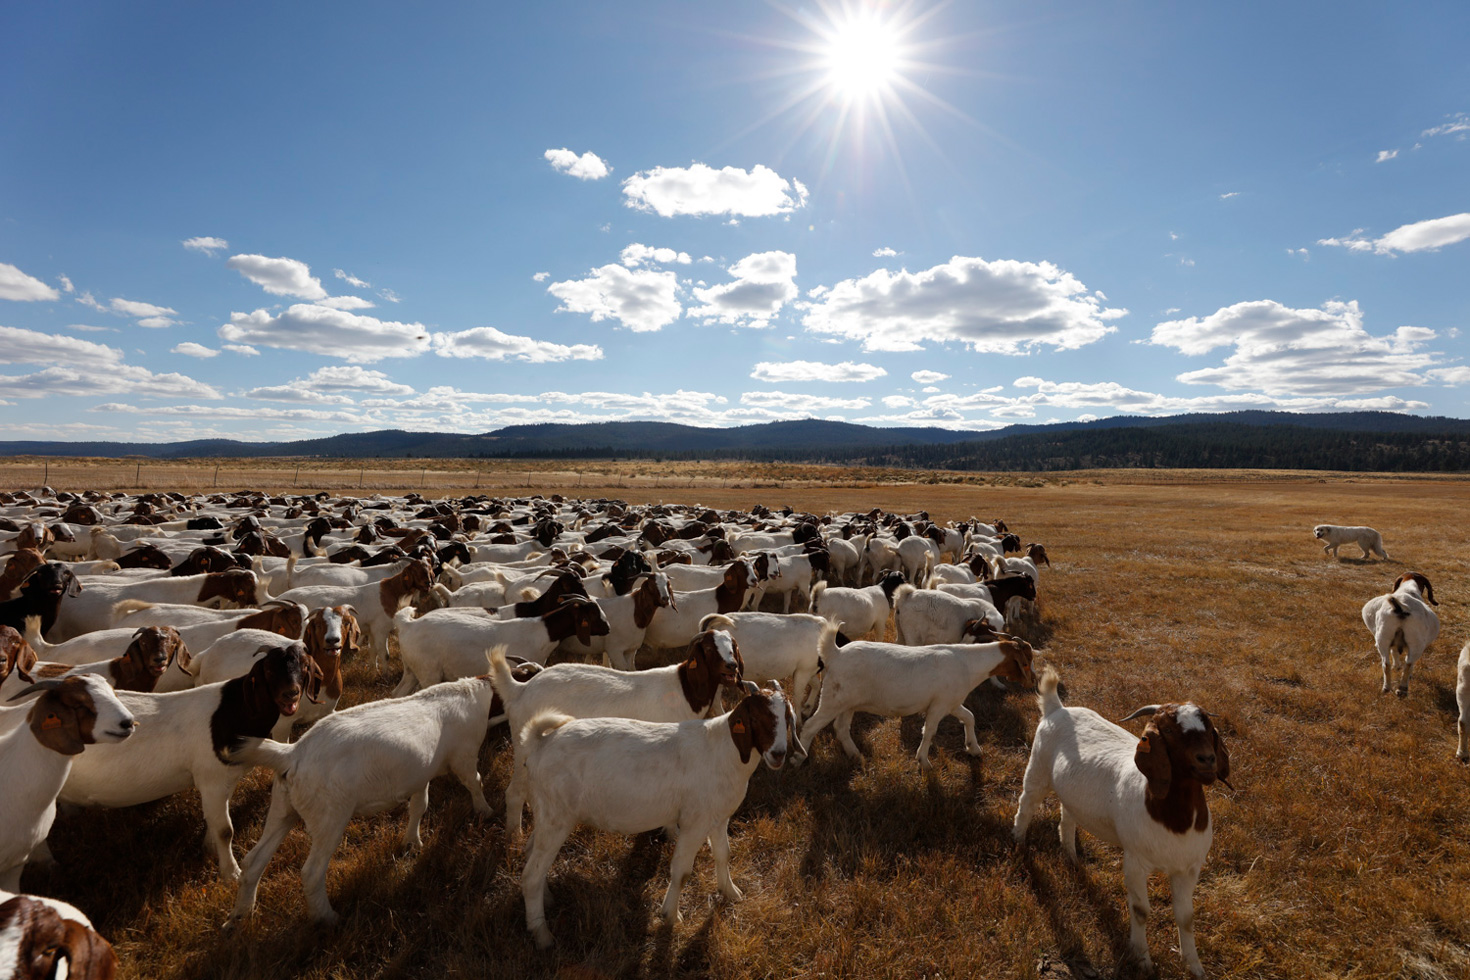 Experience authentic goat herding and cattle driving